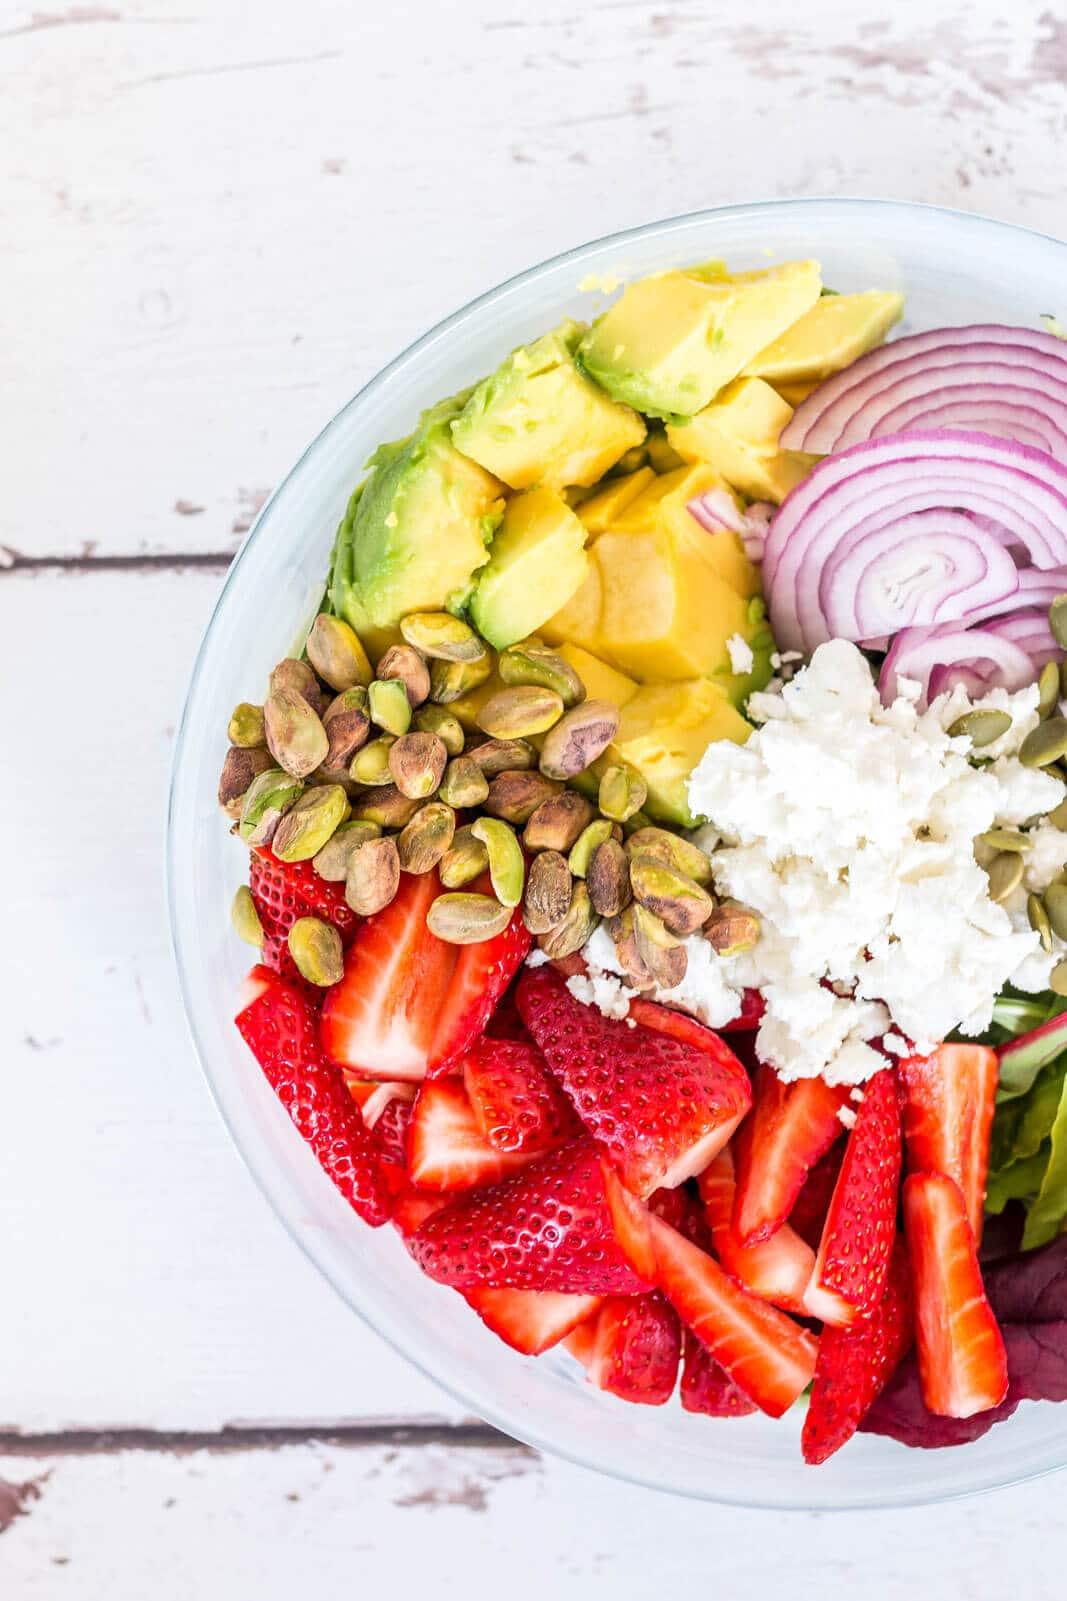 Looking for a gorgeous and healthy salad for Spring? This spring salad with green leaves, strawberries and avocado is the ideal recipe to try right now! great healthy sauce and fresh ingredients that's ideal for any occasion!